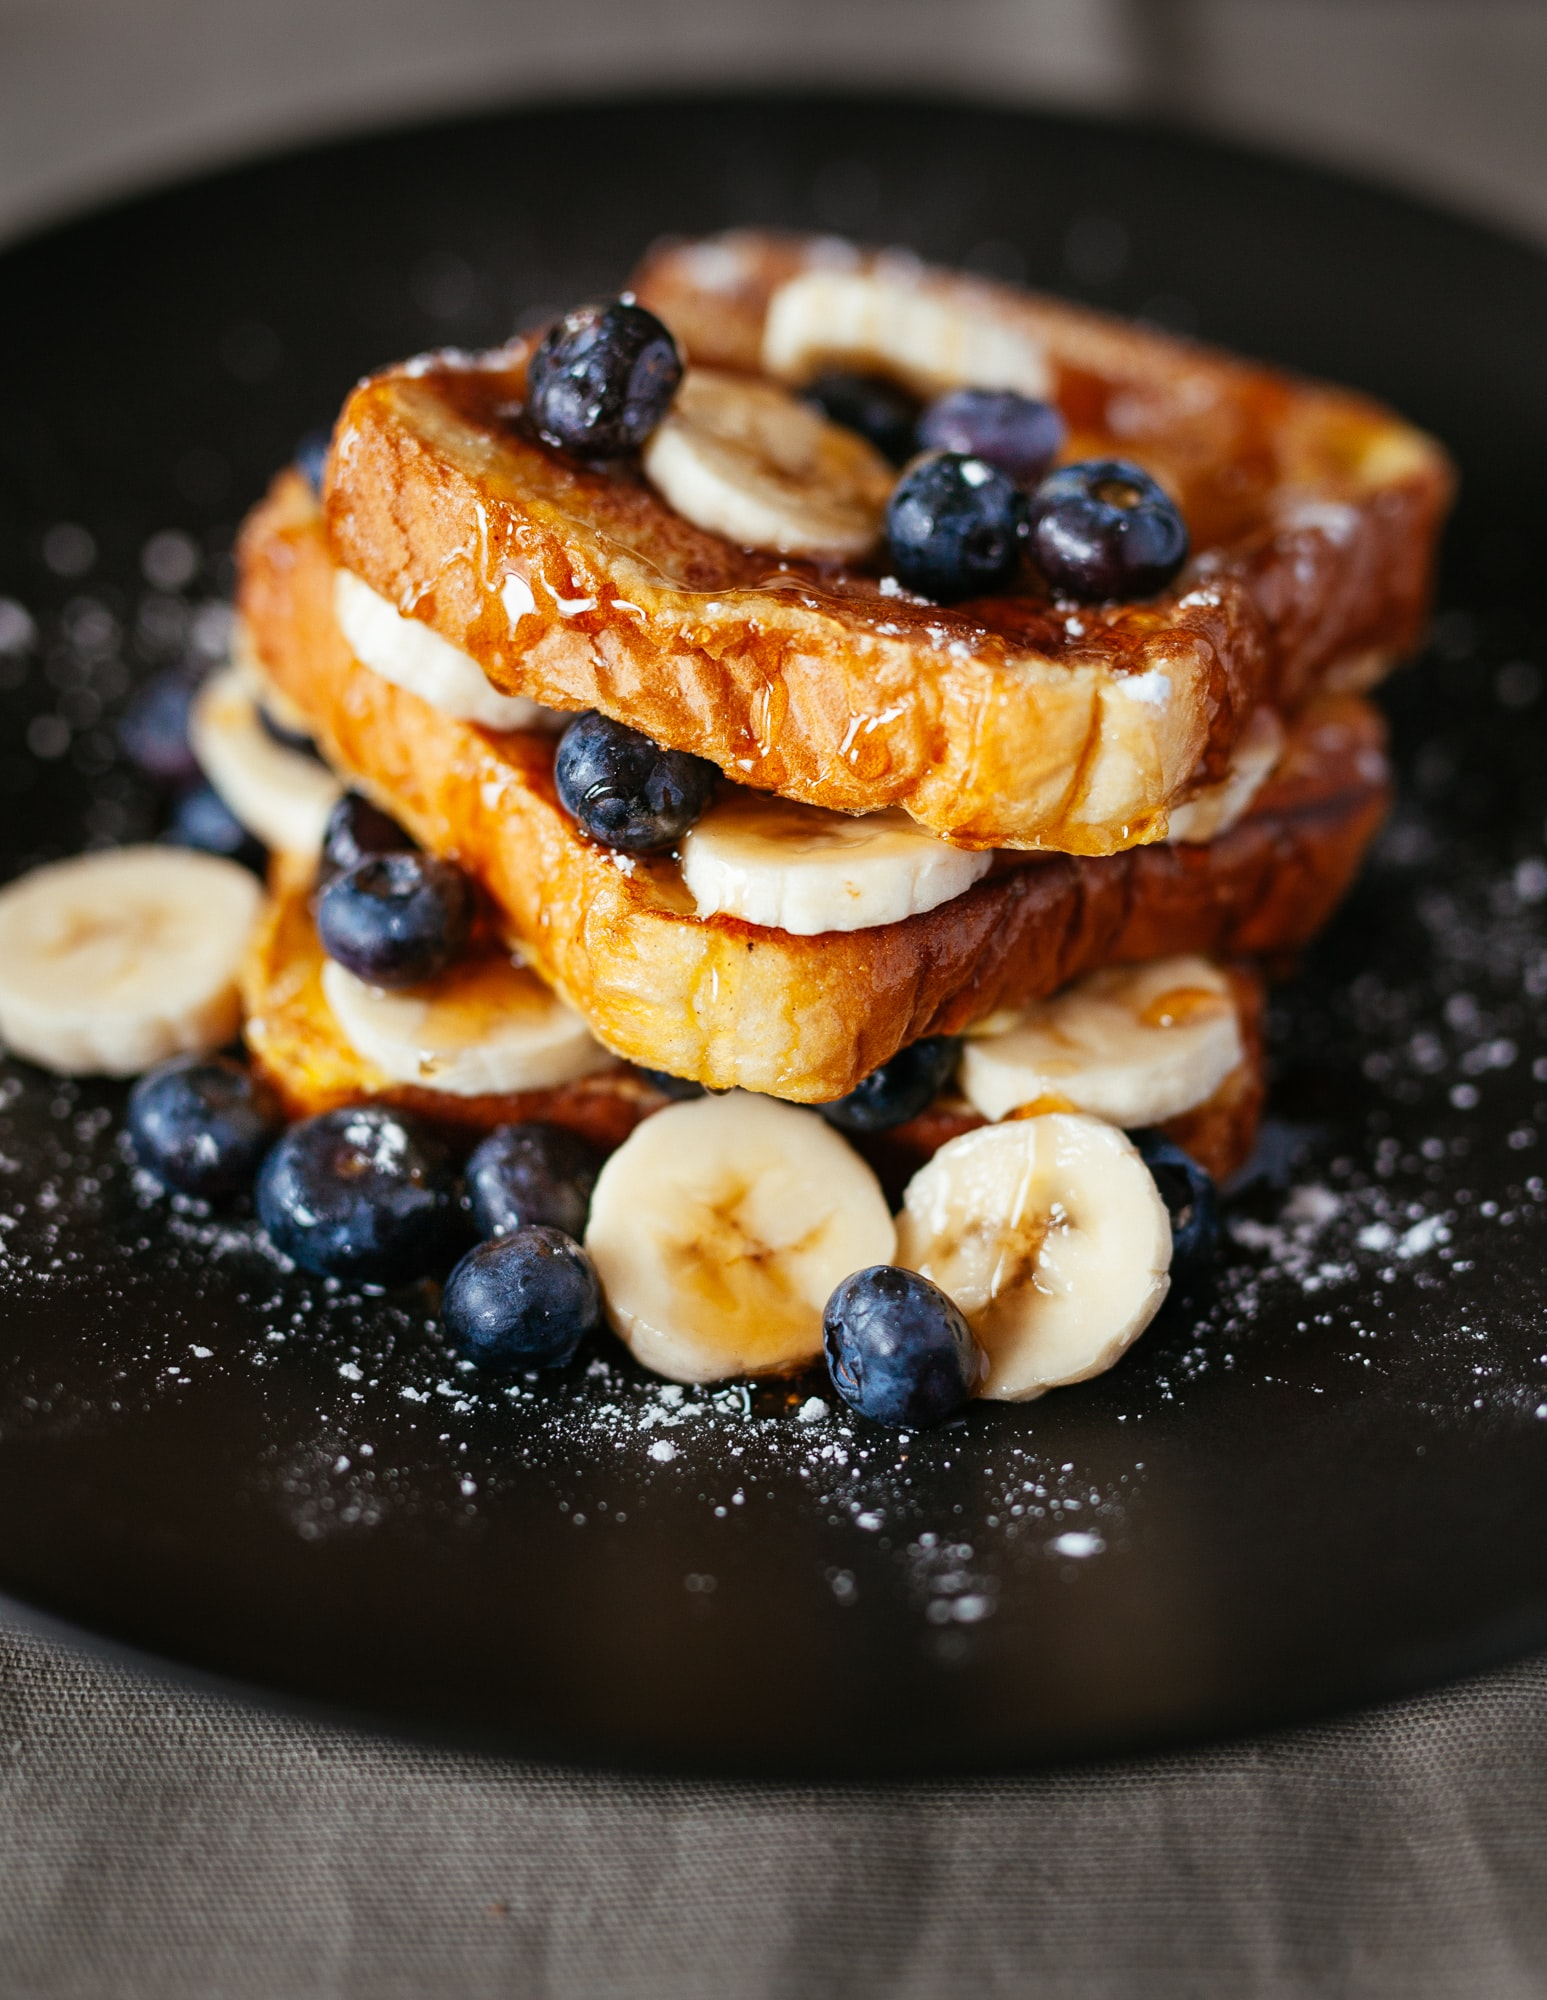 Sweet french toast with syrup, bananas, and blueberries for breakfast